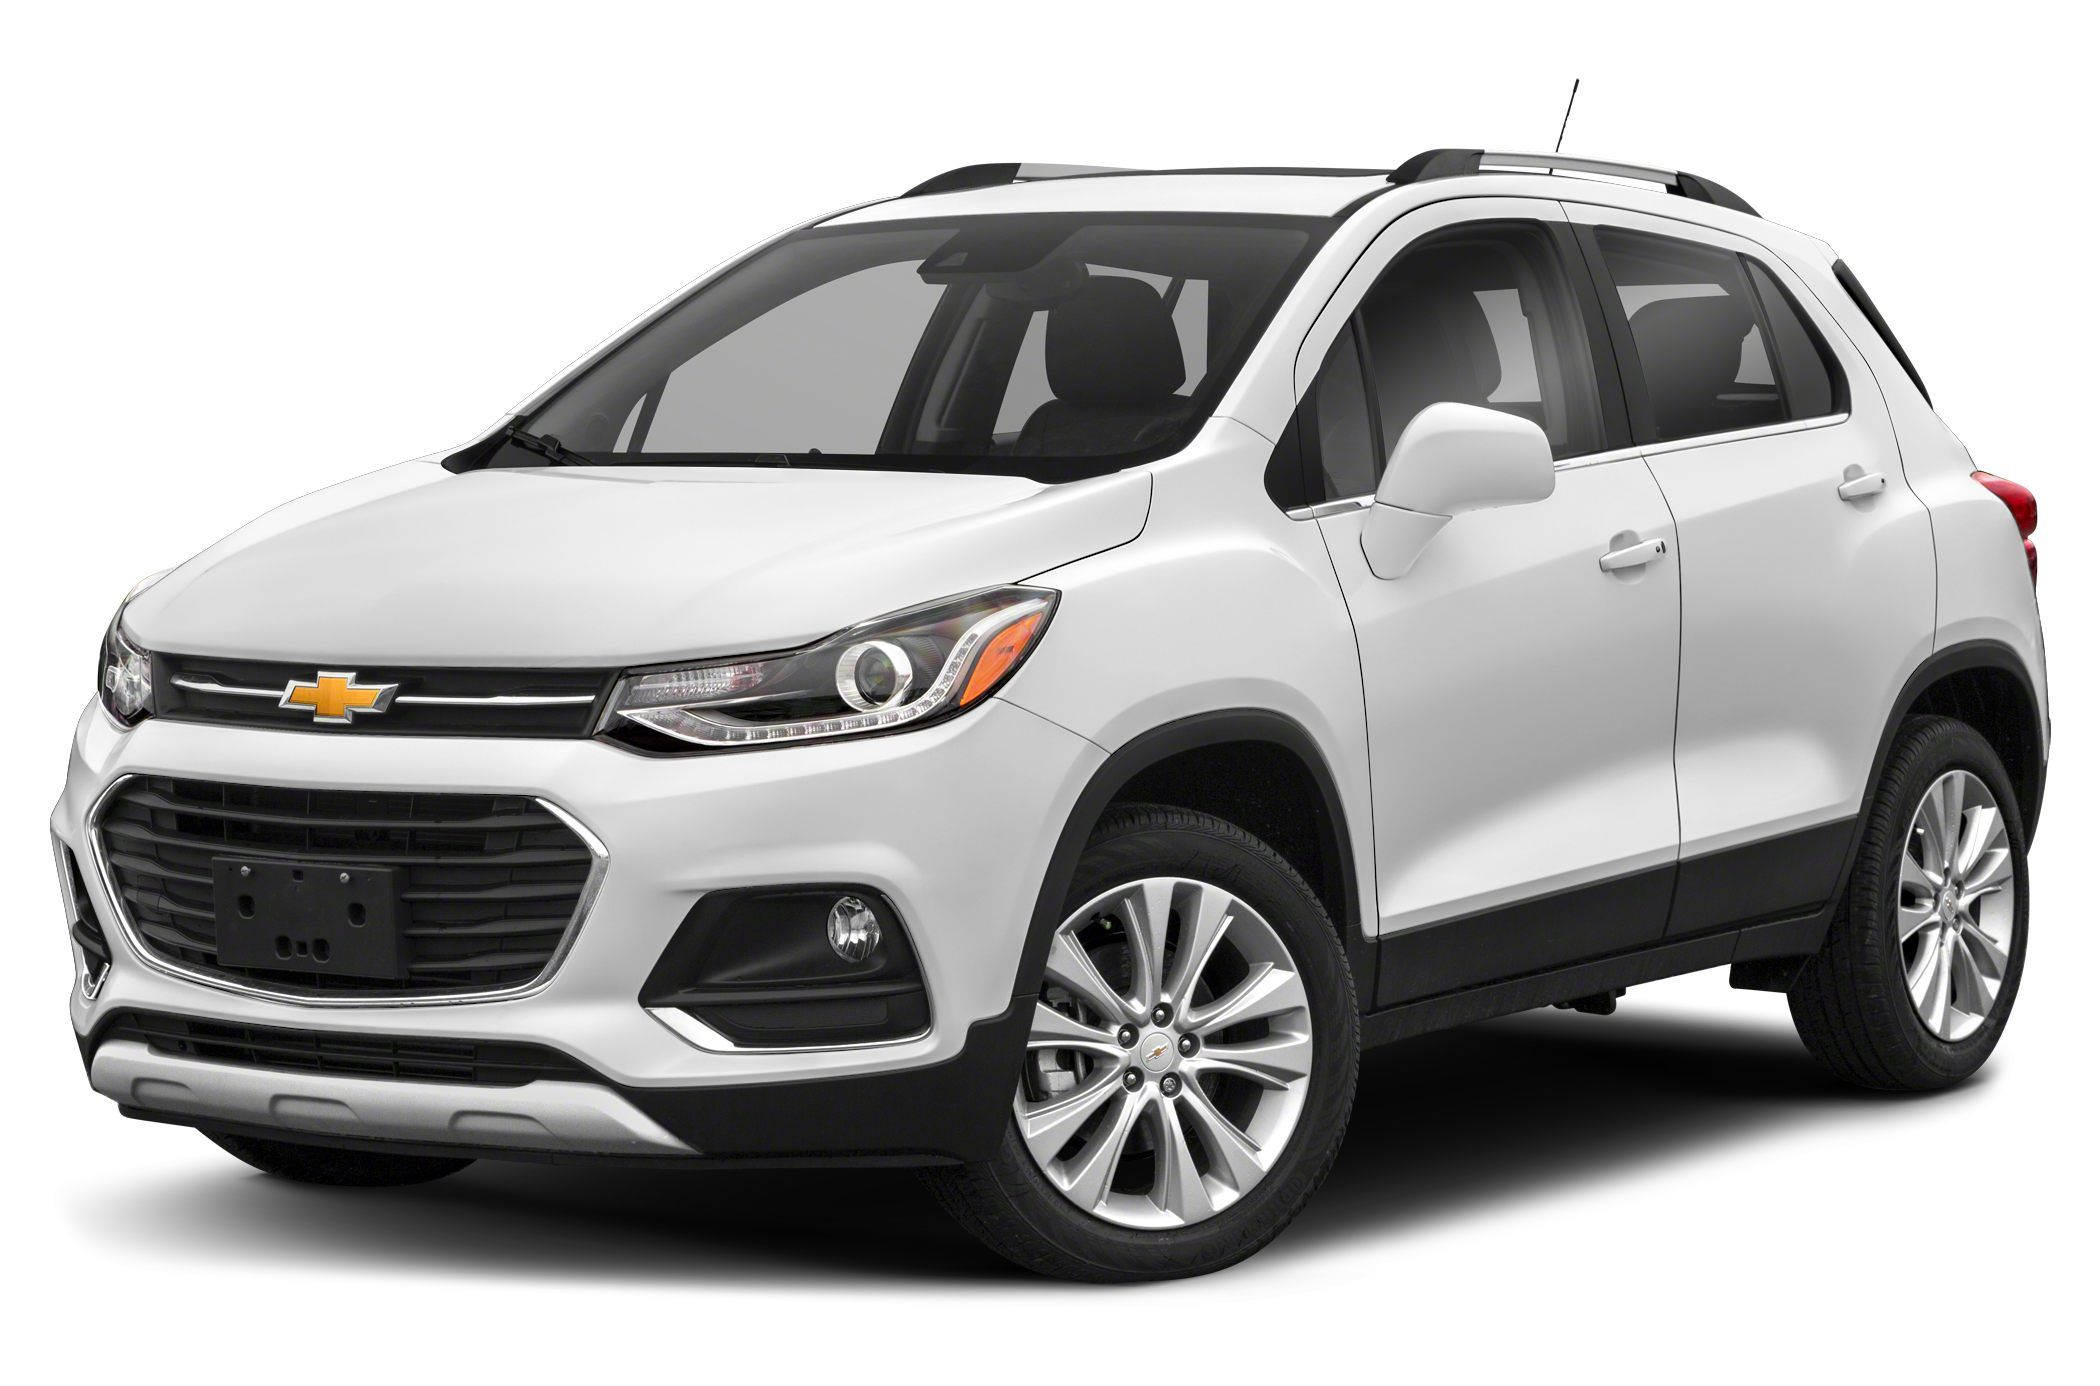 2017 Chevrolet Trax Premier All Wheel Drive Equipment Chevrolet